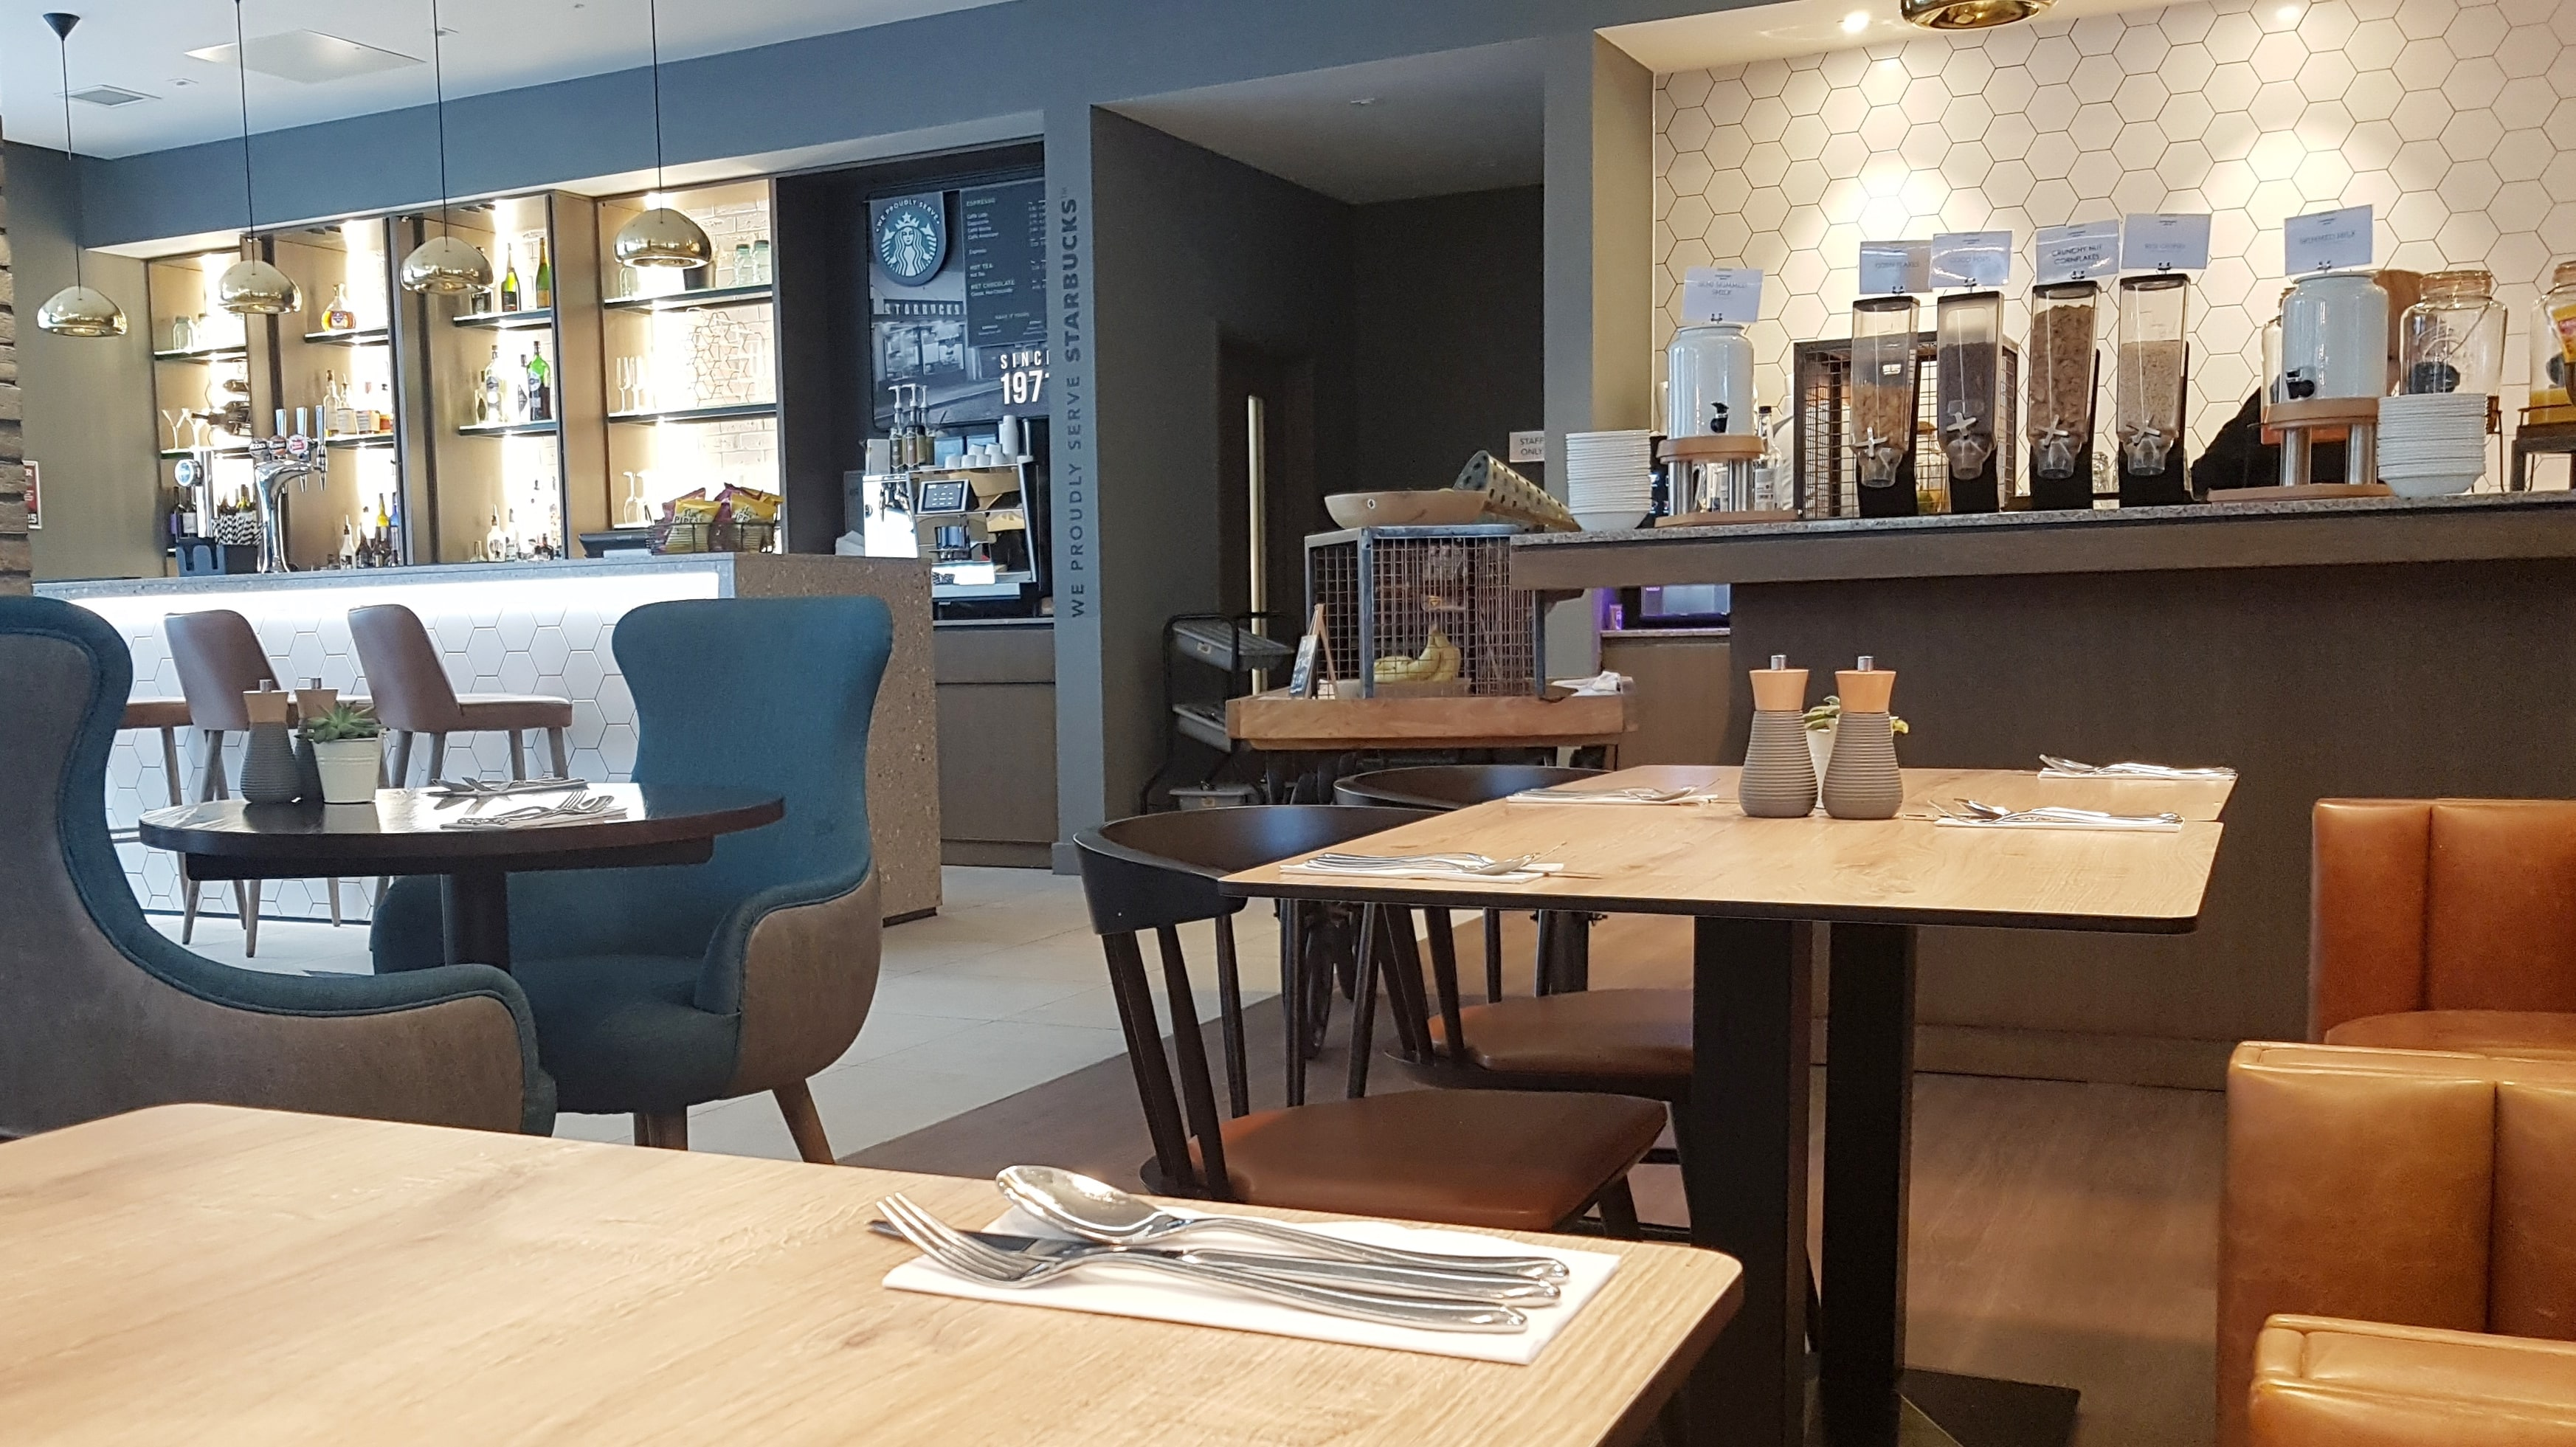 Travel: The Courtyard Marriott Hotel, Oxford